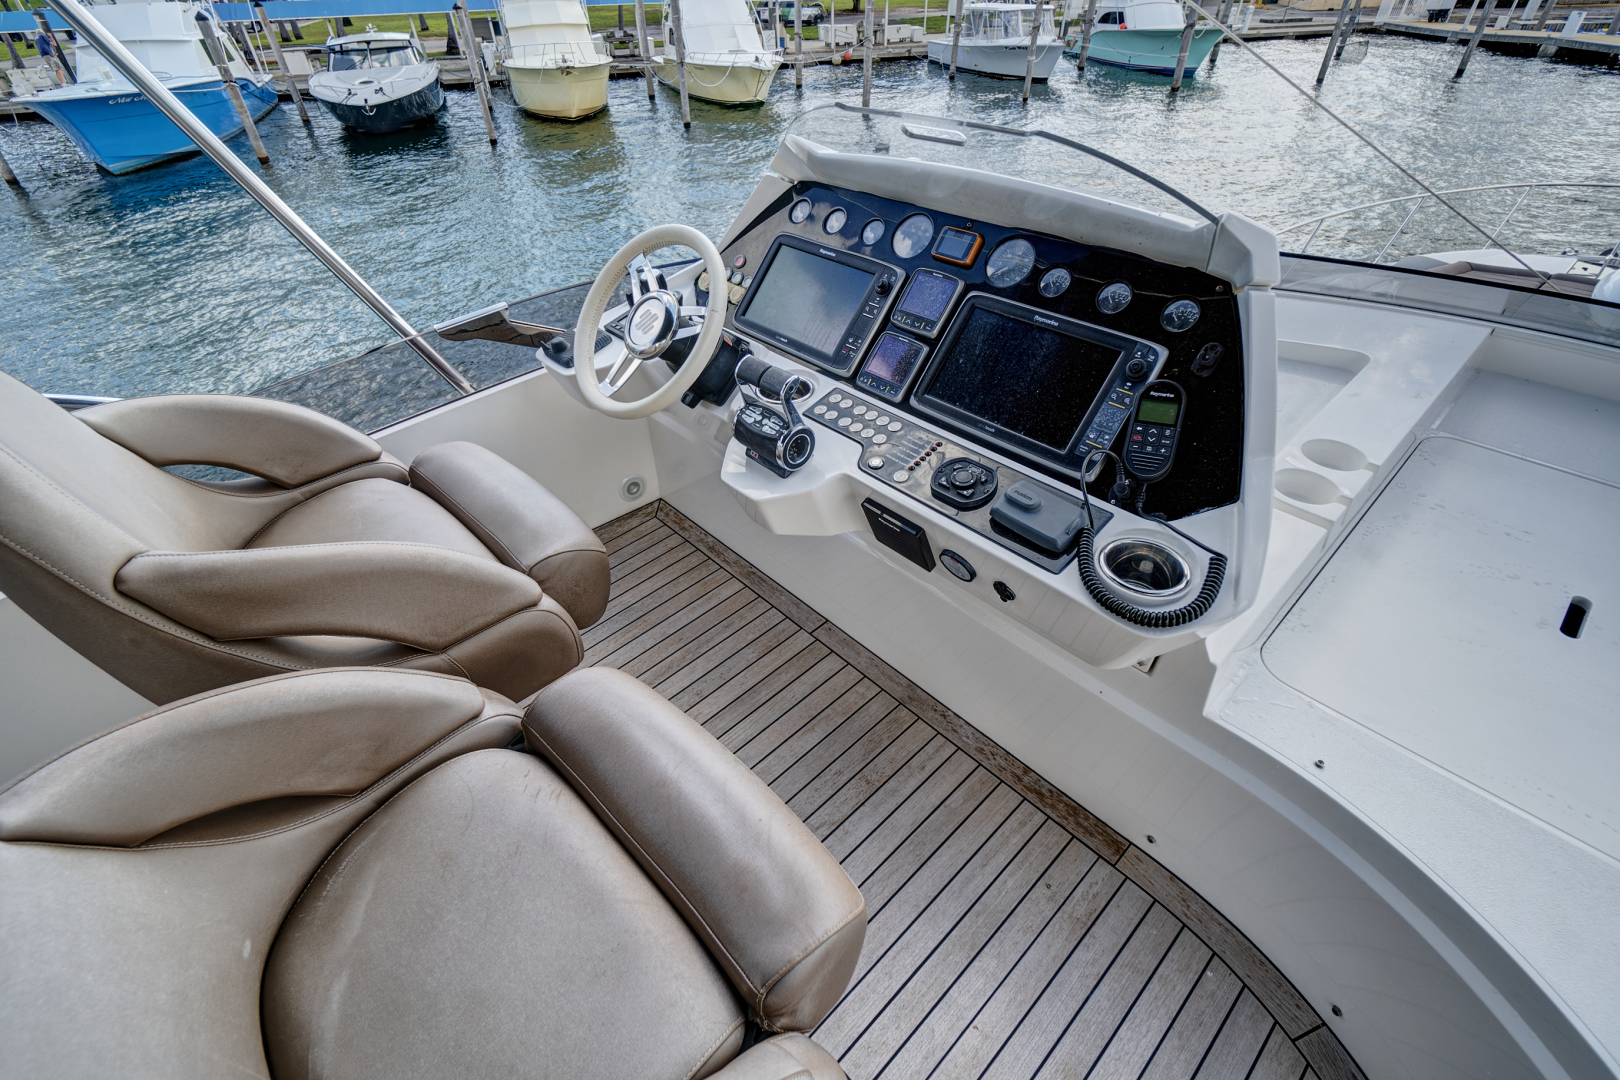 Sunseeker-68 Sport Yacht 2014-New Page Miami Beach-Florida-United States-1581185 | Thumbnail